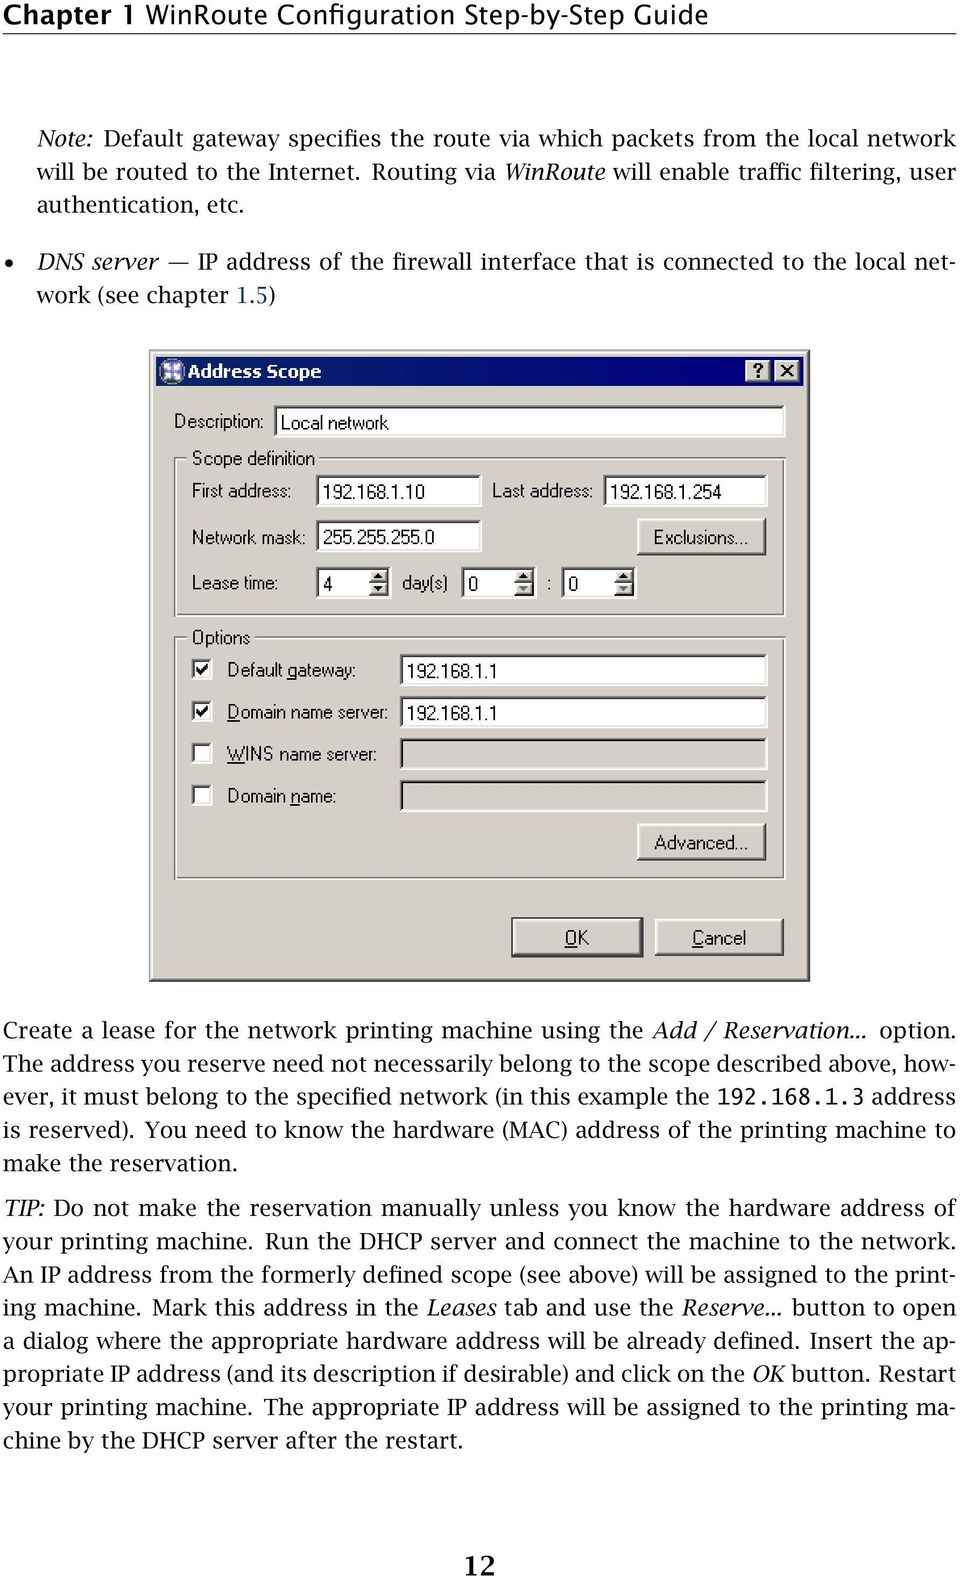 5) Create a lease for the network printing machine using the Add / Reservation... option.